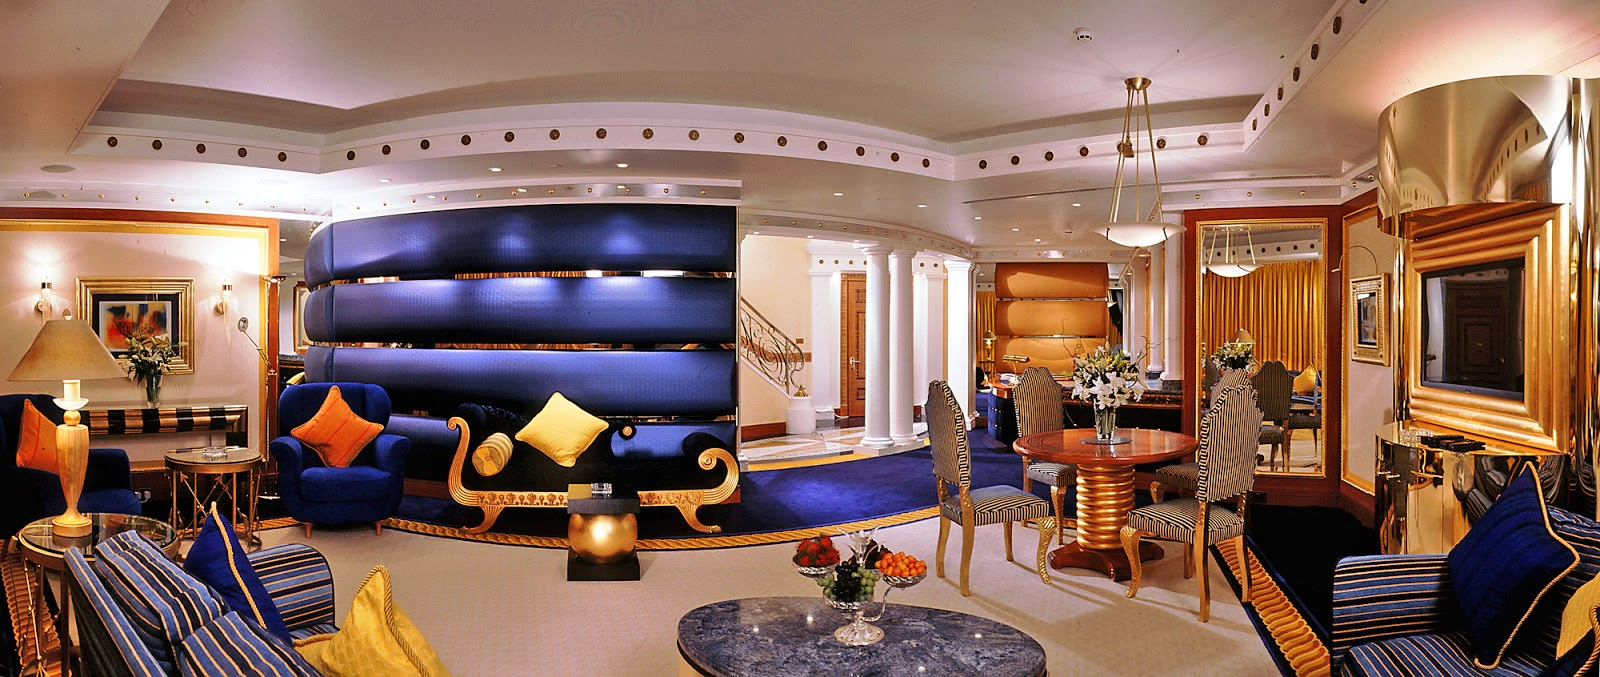 5 Most Expensive Hotels In The World 140 Luxury